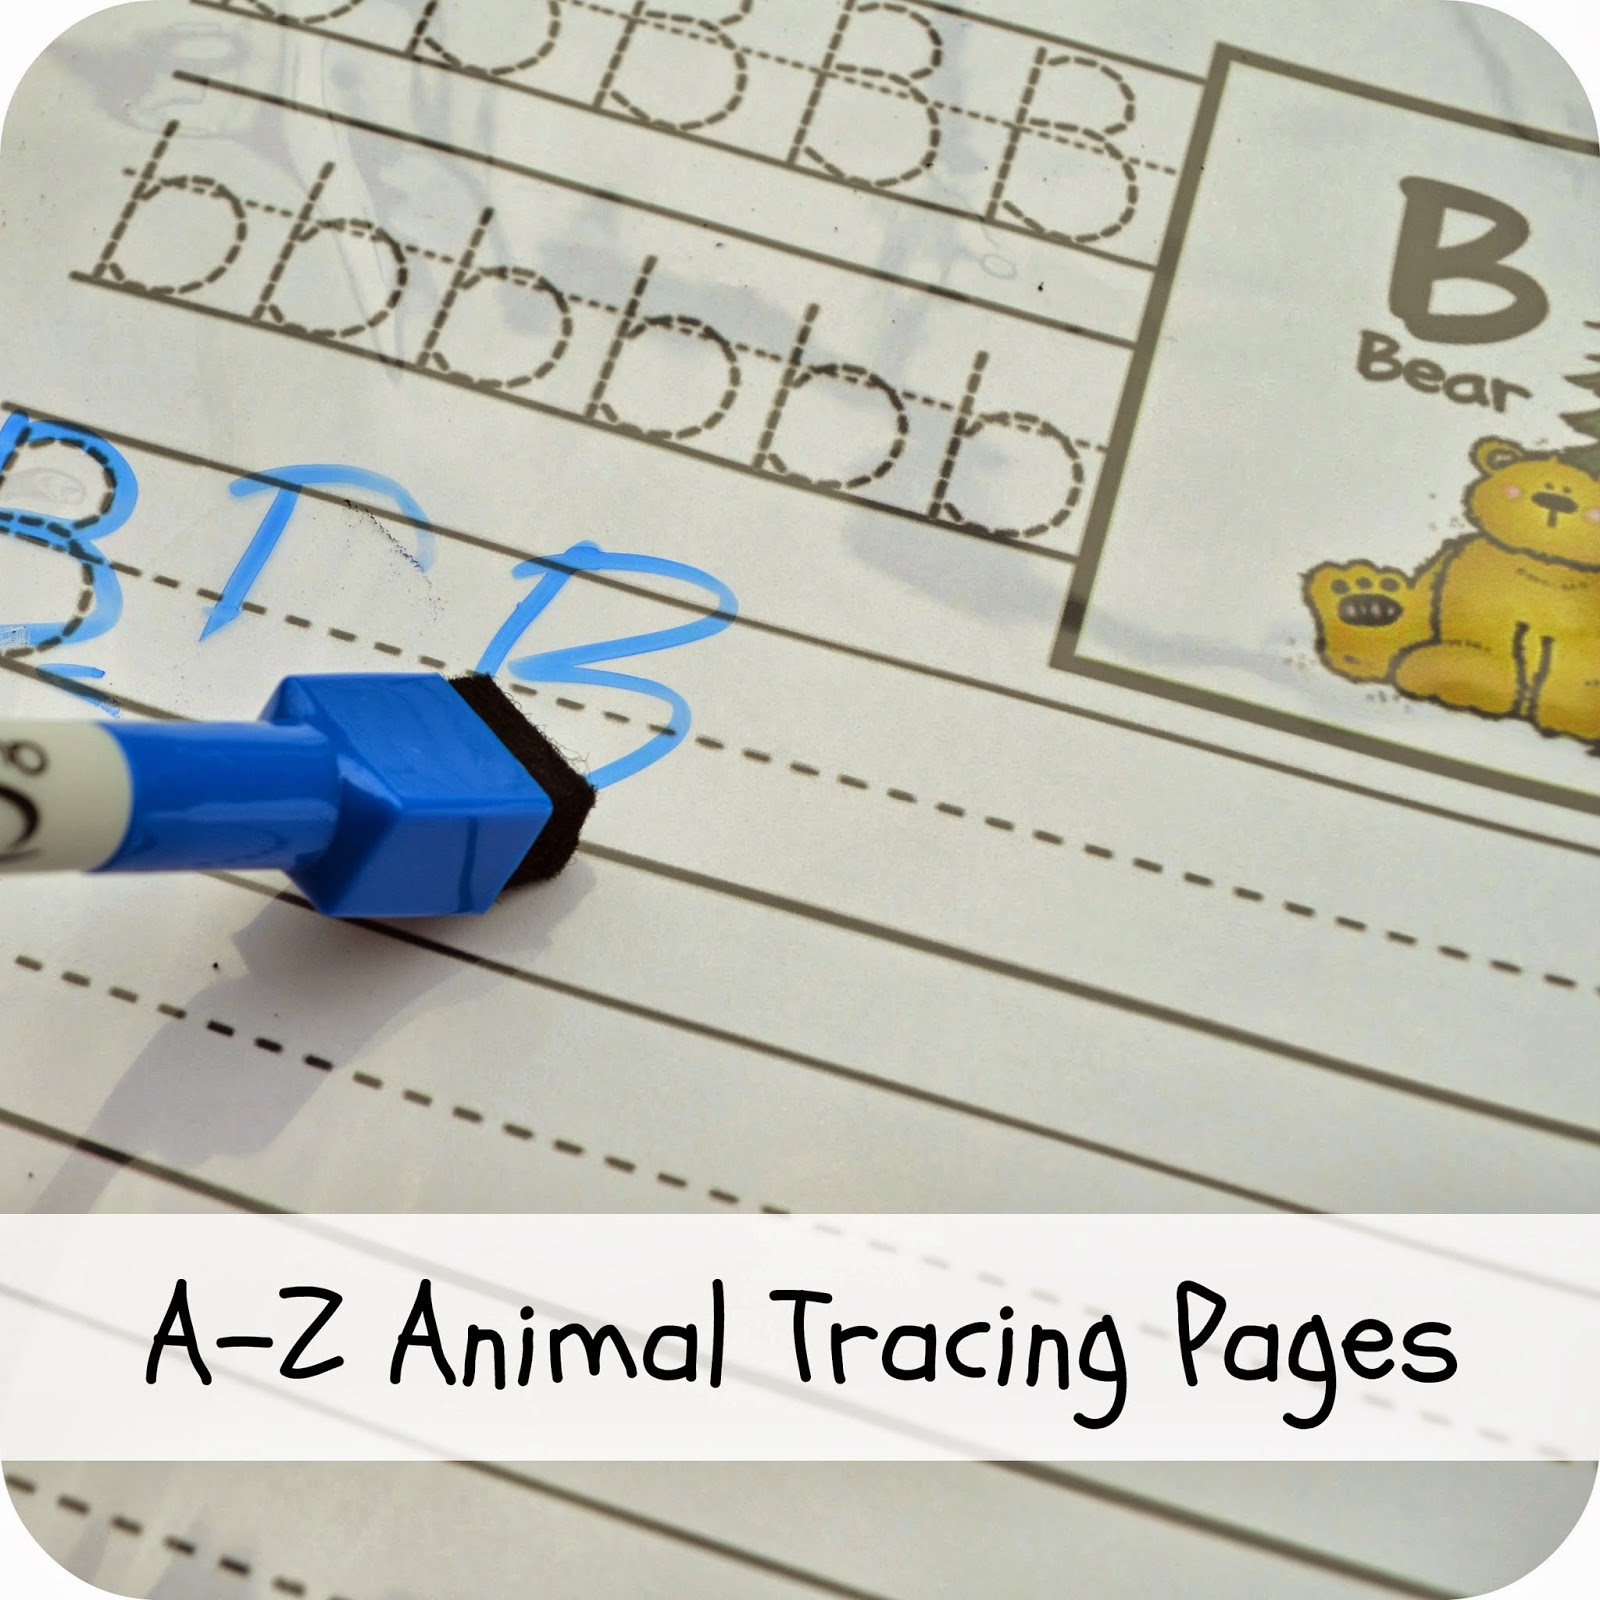 A-Z Animal Tracing Pages